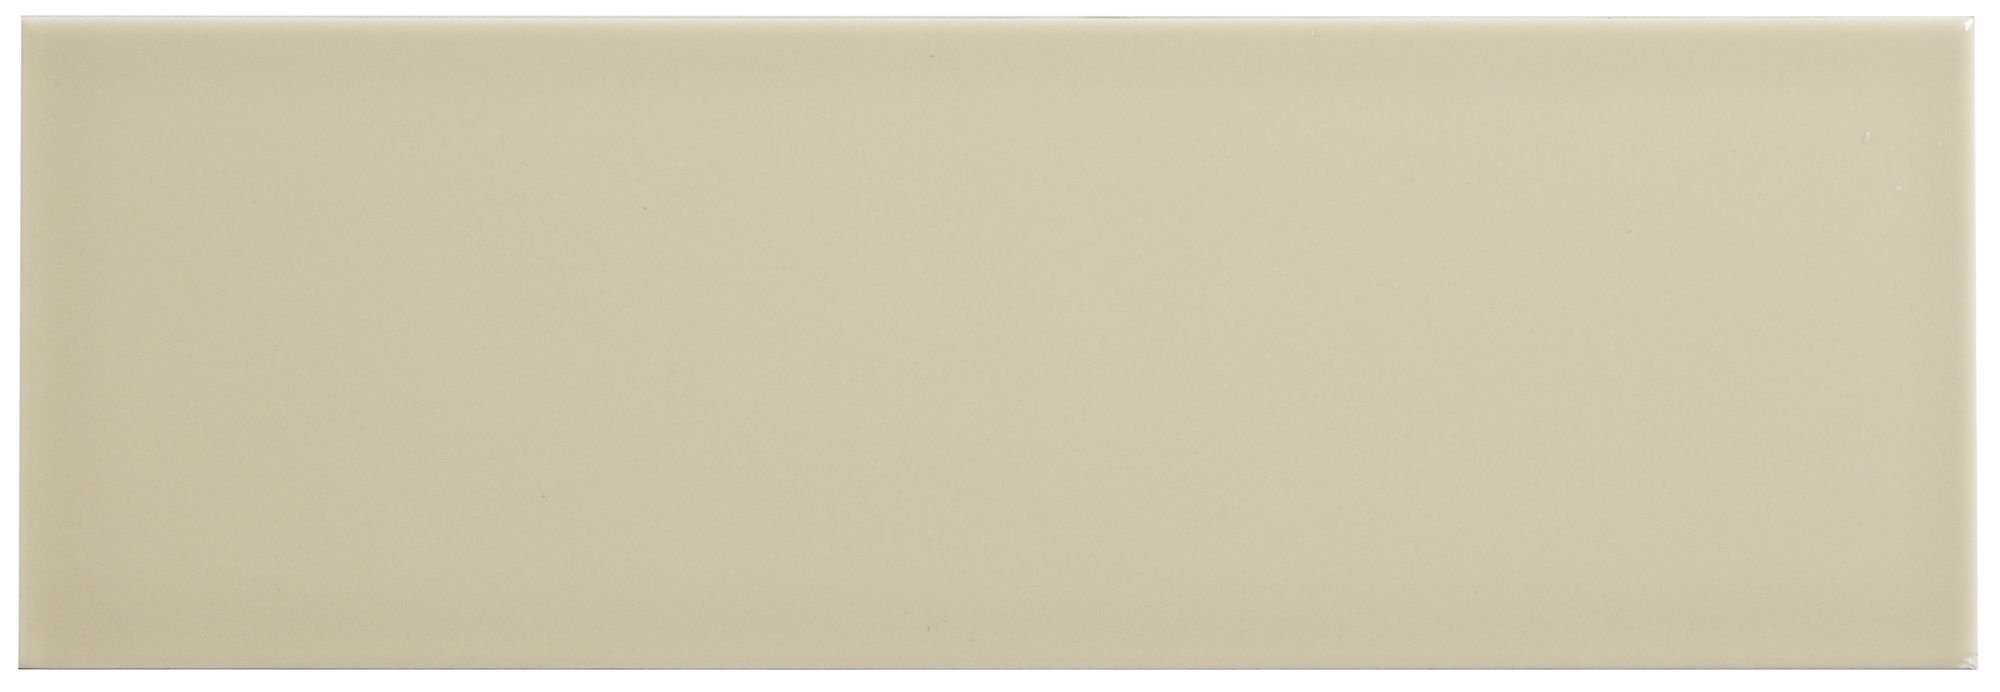 Helena Light Grey Ceramic Wall Tile Pack Of 12 L 330mm